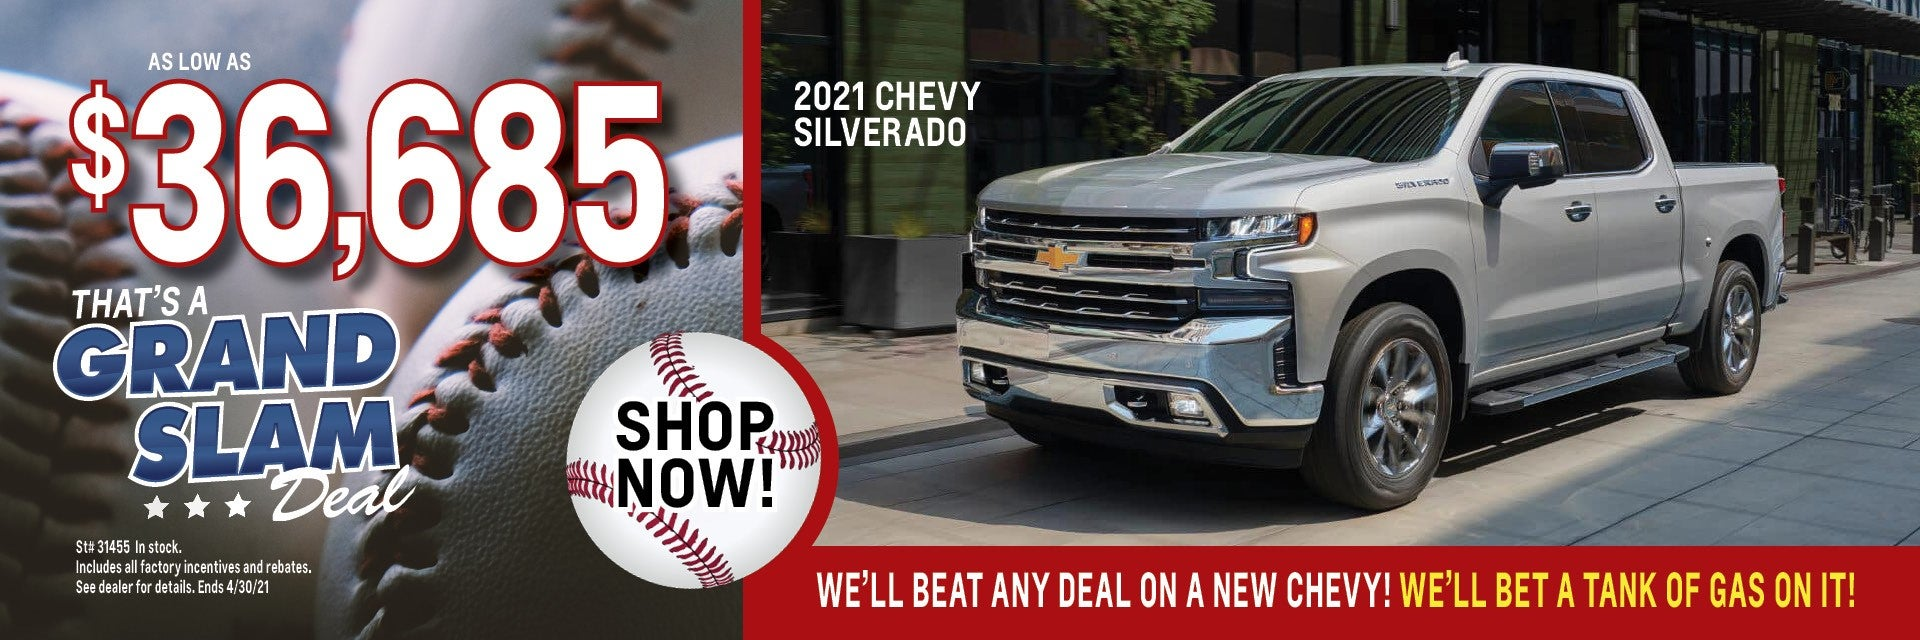 St Louis Chevrolet Dealer In St Louis Mo New And Used Chevrolet Dealership Creve Coeur Belleville Granite City Columbia Il